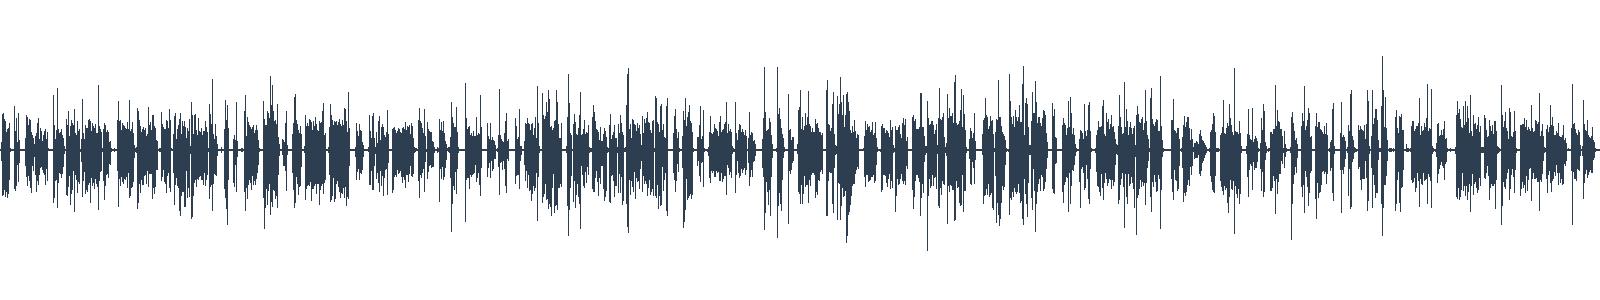 Vlk a dýka waveform